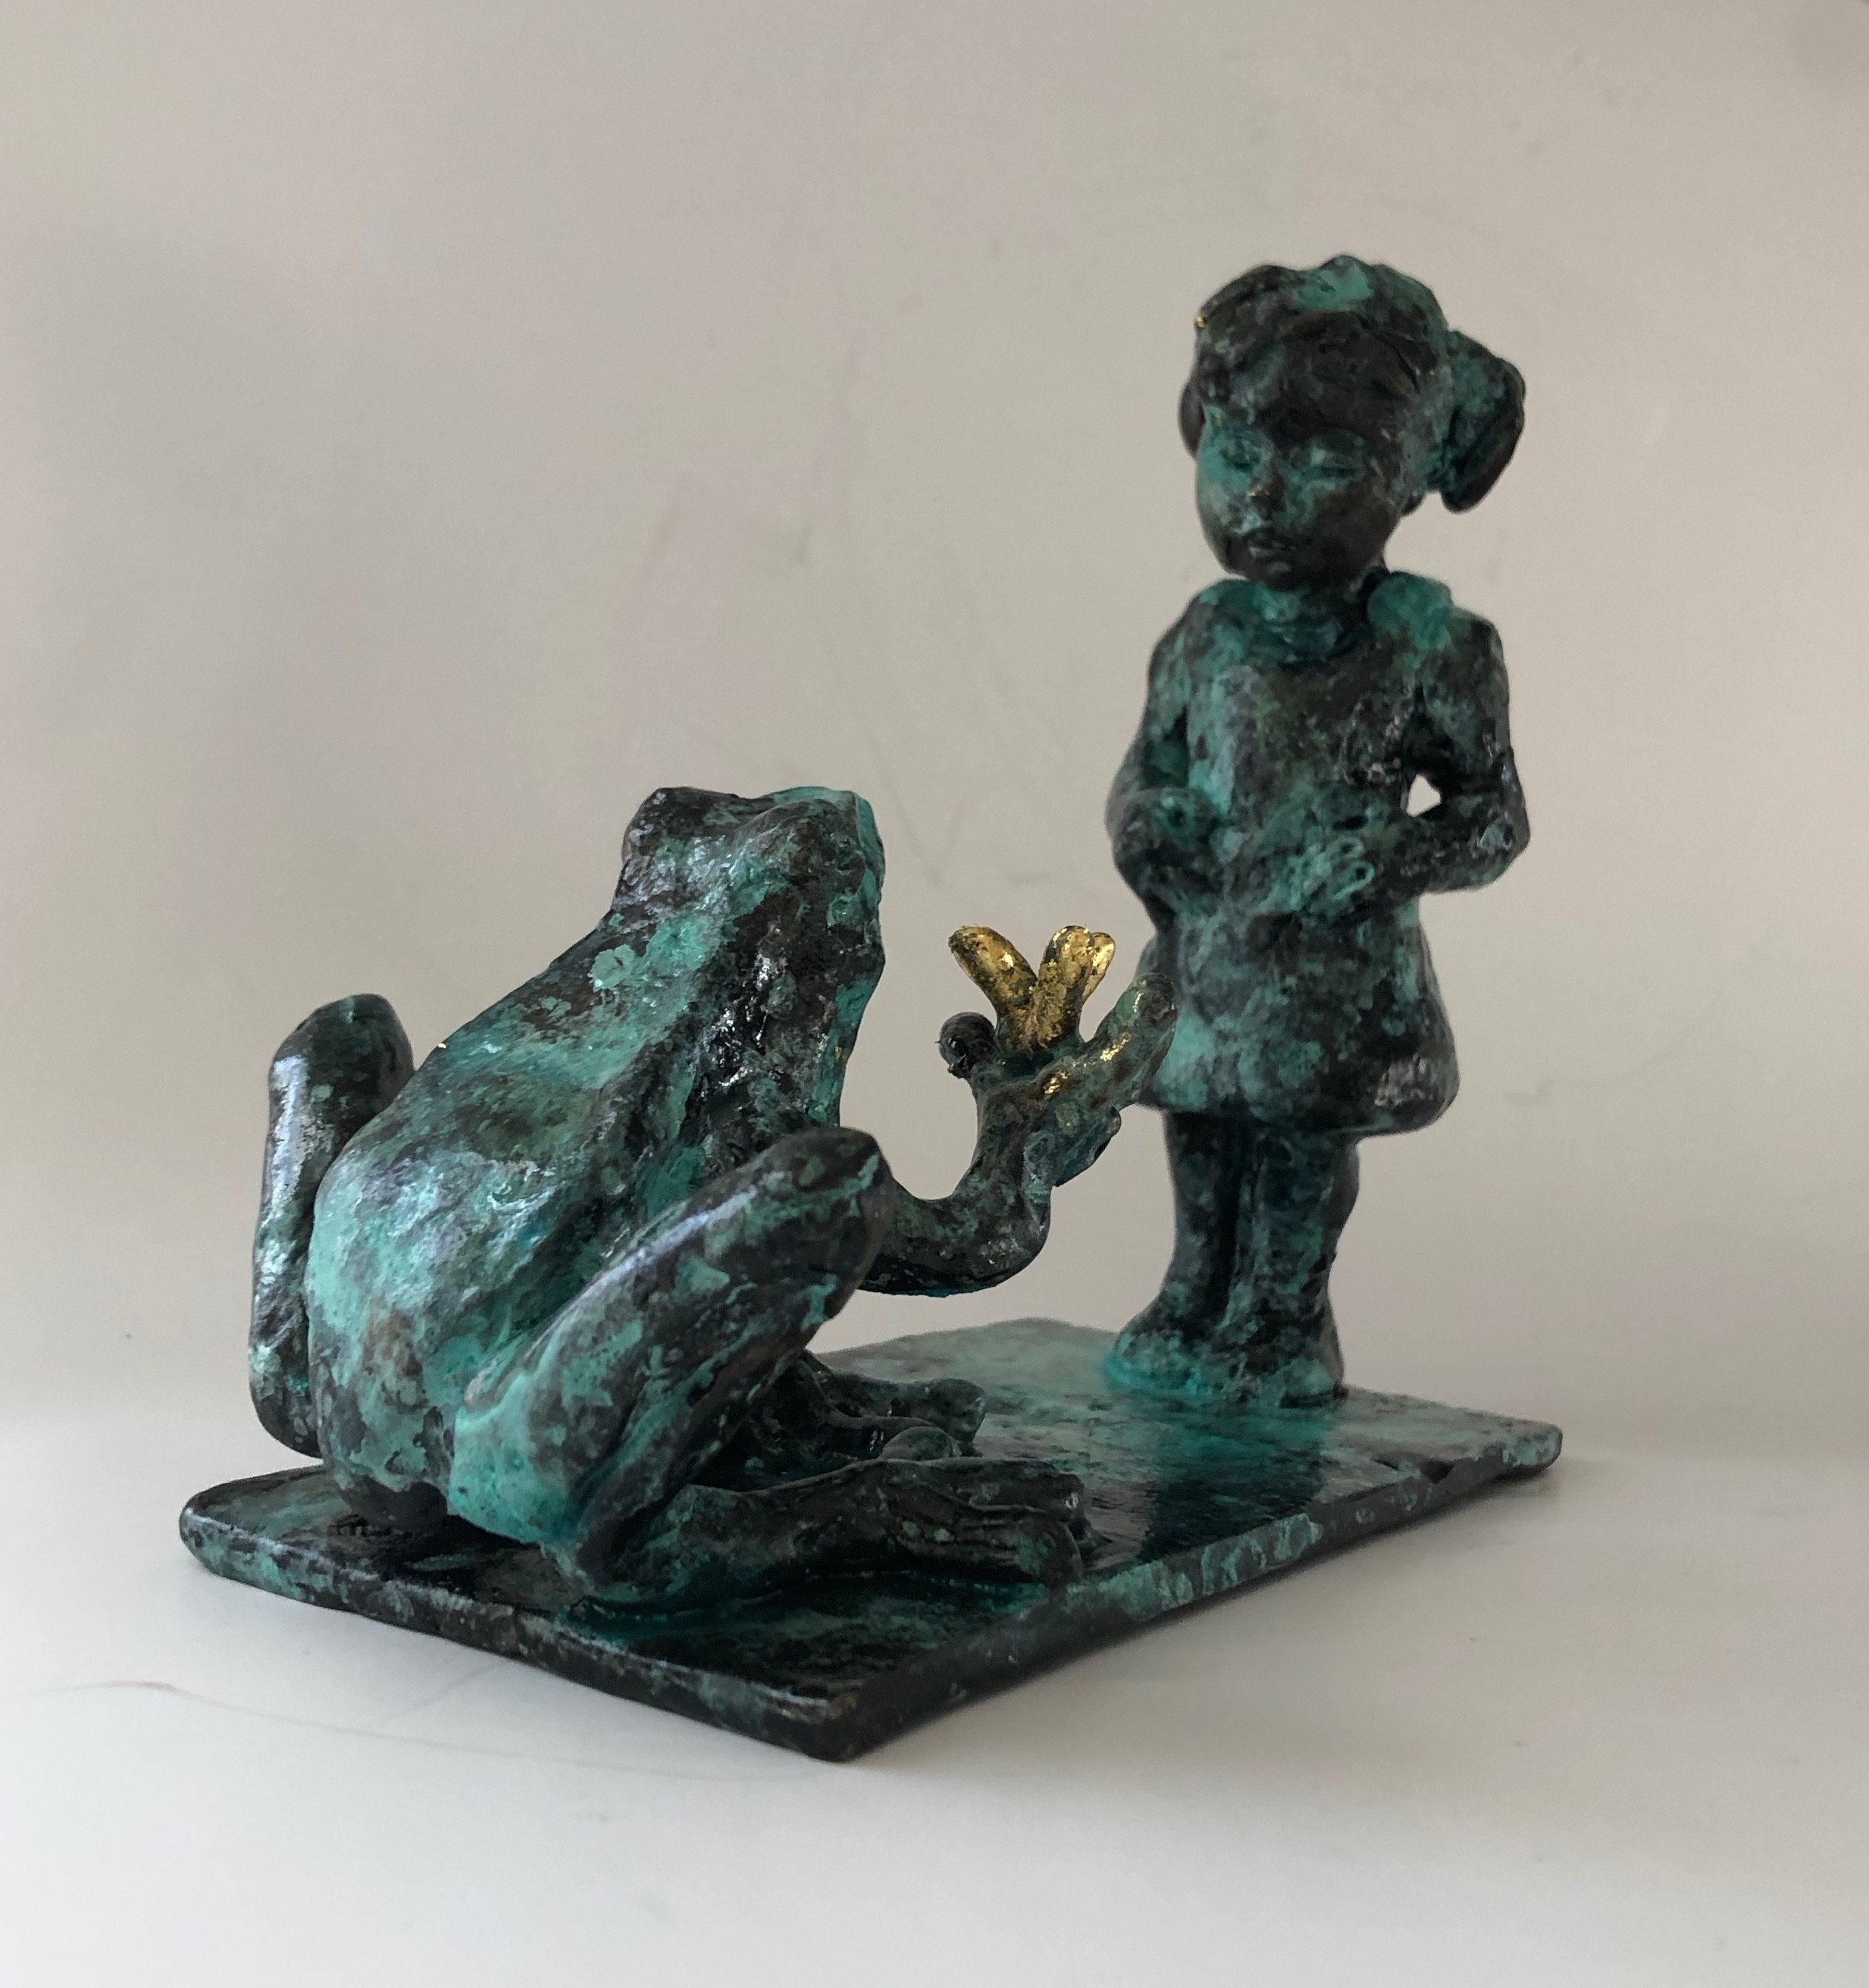 sculpture, bronze, frog, girl, magic realism